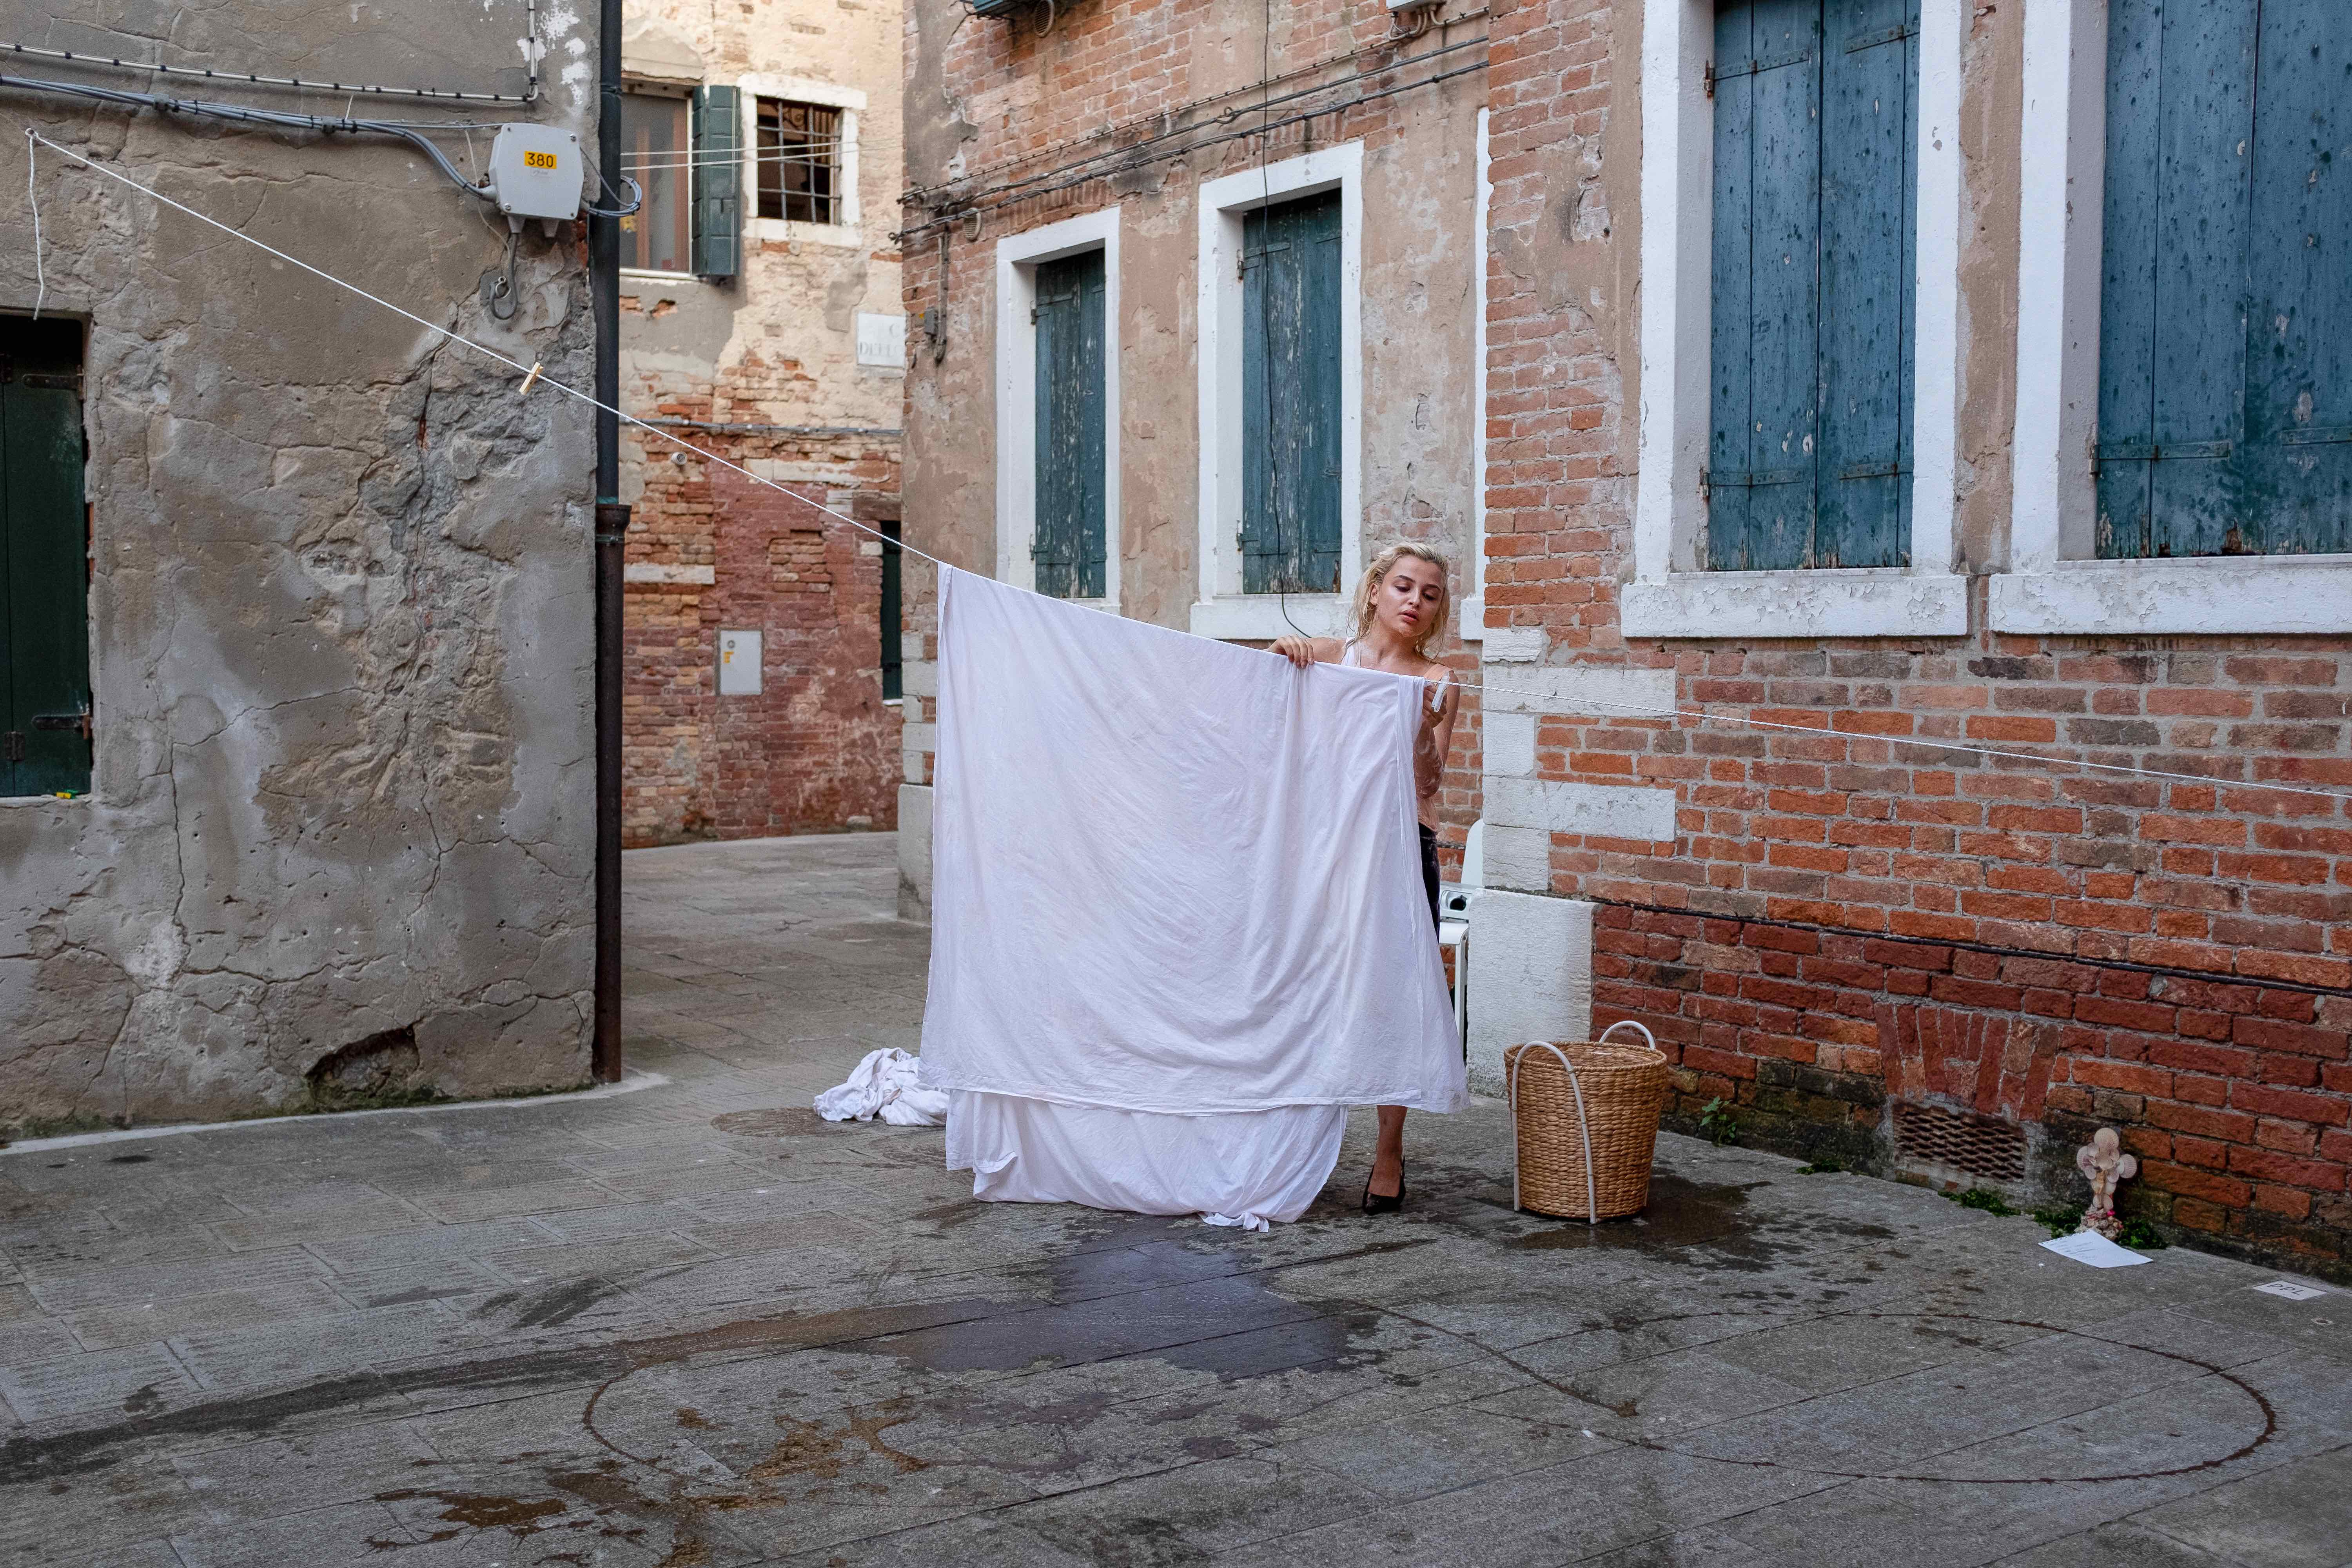 Rima Zamzam, Clean Shits, documentation of performance (approximately 40 minutes), 01st of August 2019, Venice